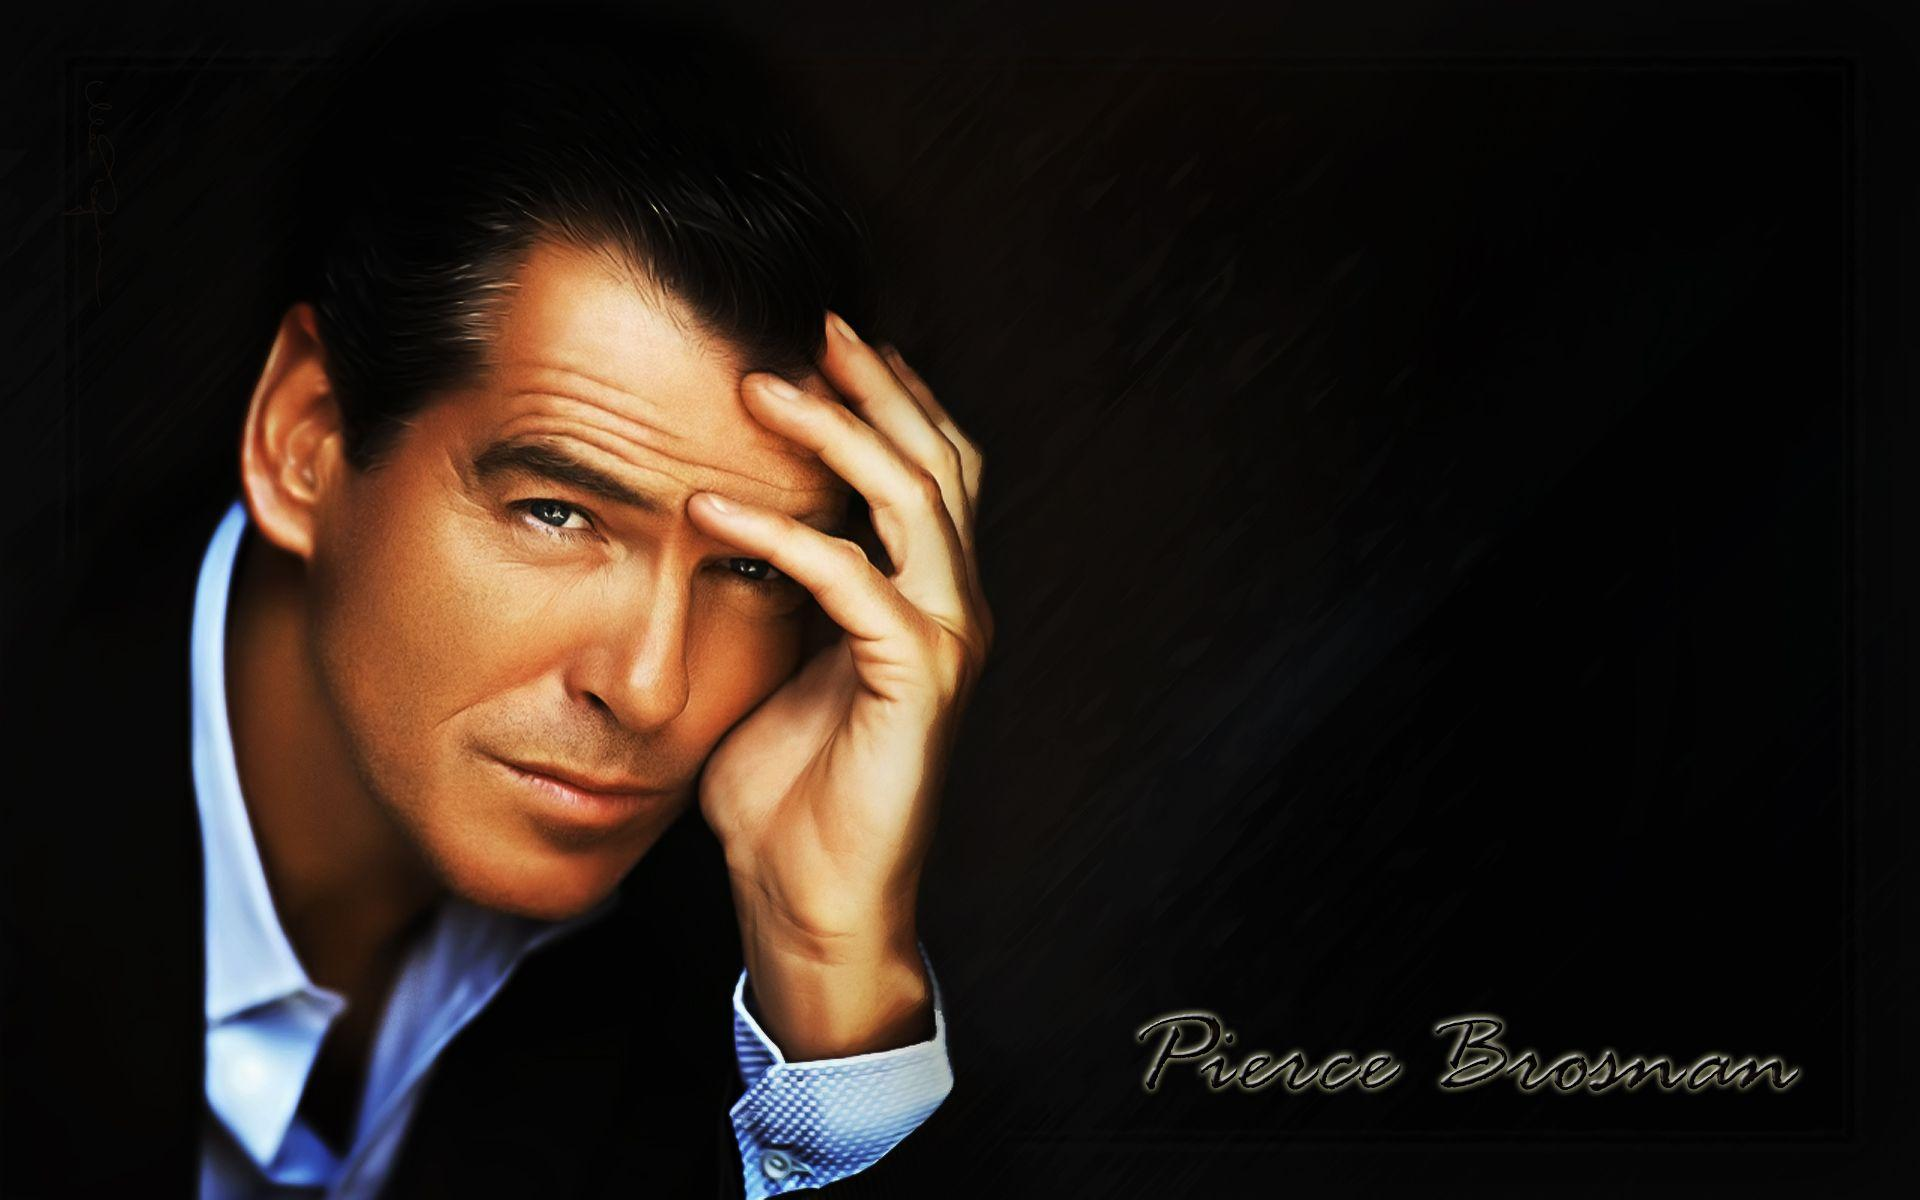 Pierce brosnan wallpapers wallpaper cave - James bond images hd ...